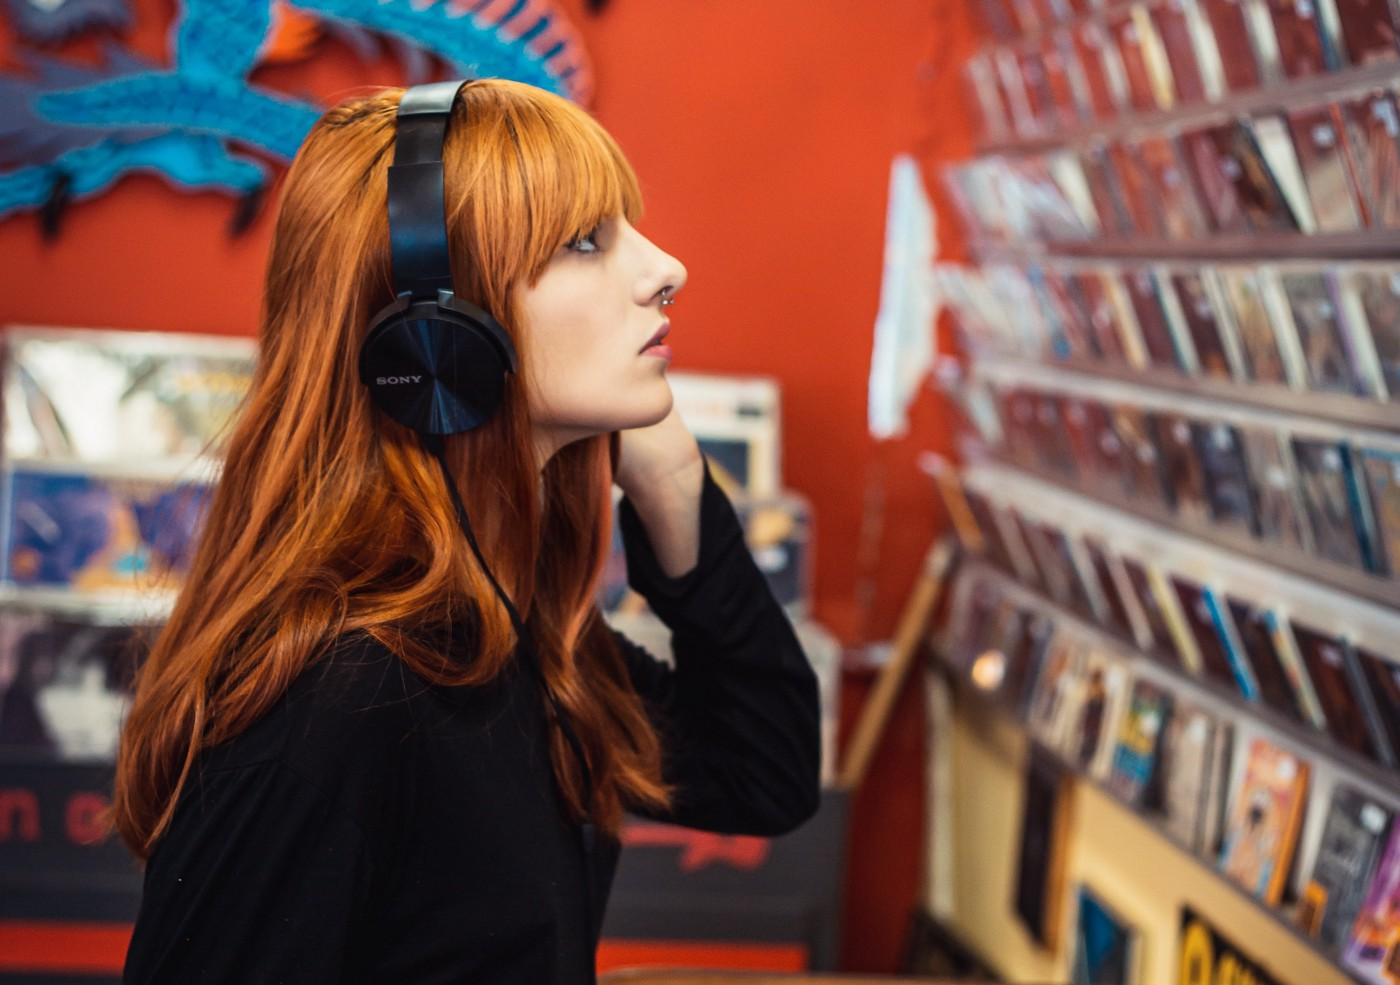 Young woman listening to music and looking at CDs in a music shop